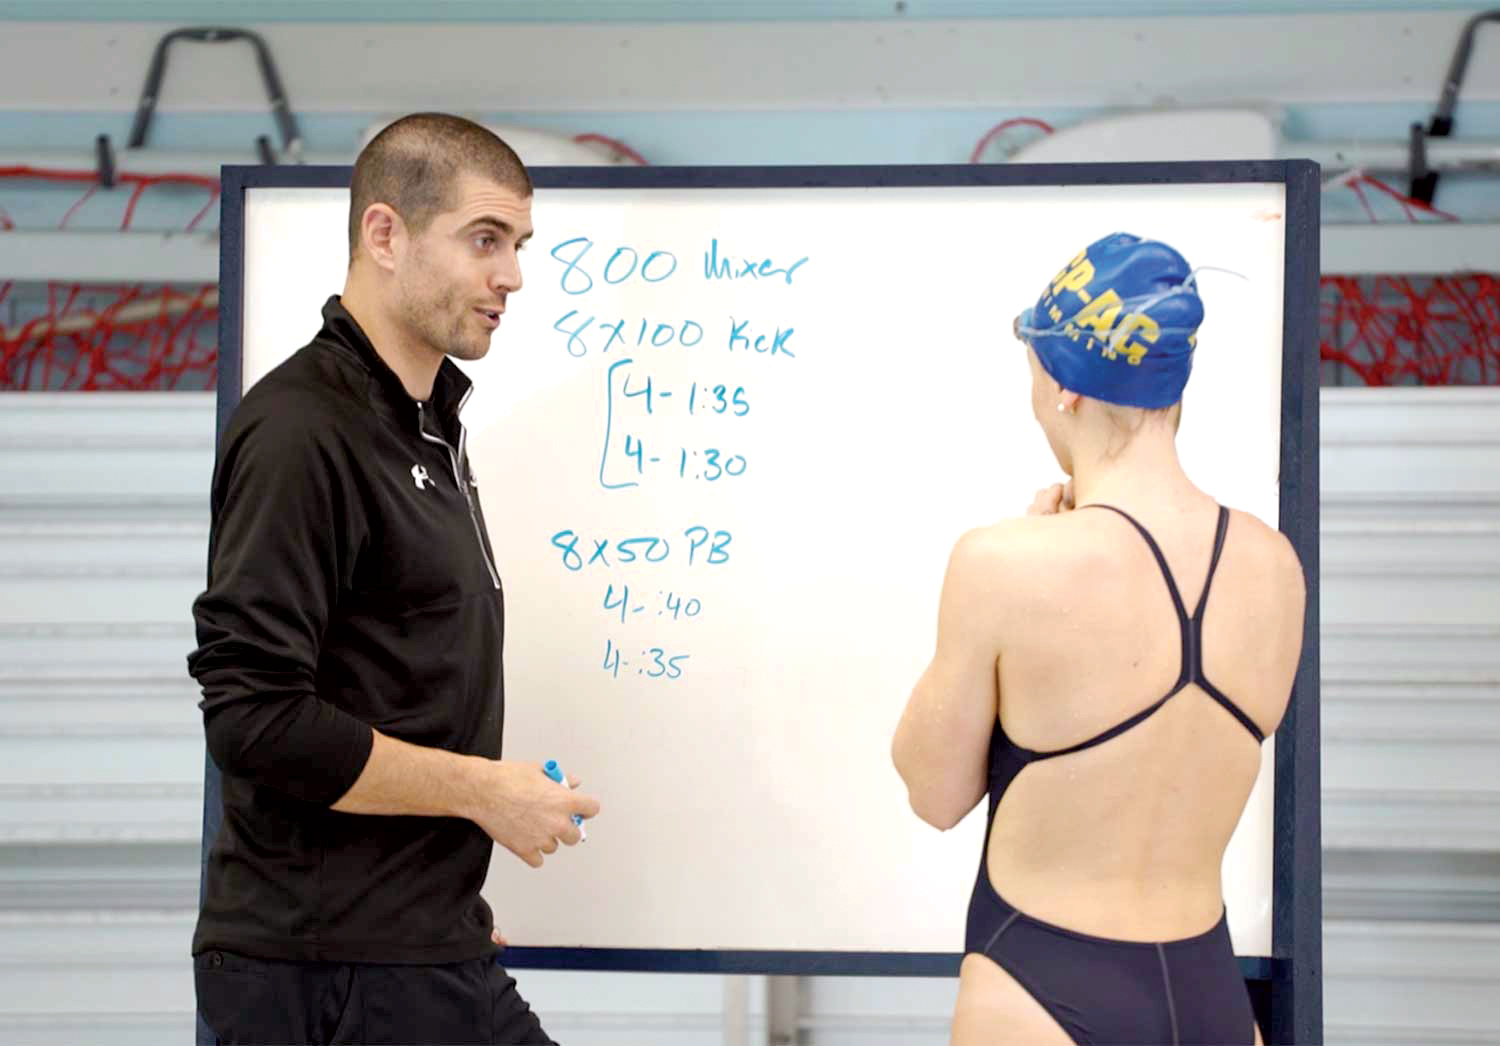 Coaching a Swimmer Through a Training Session